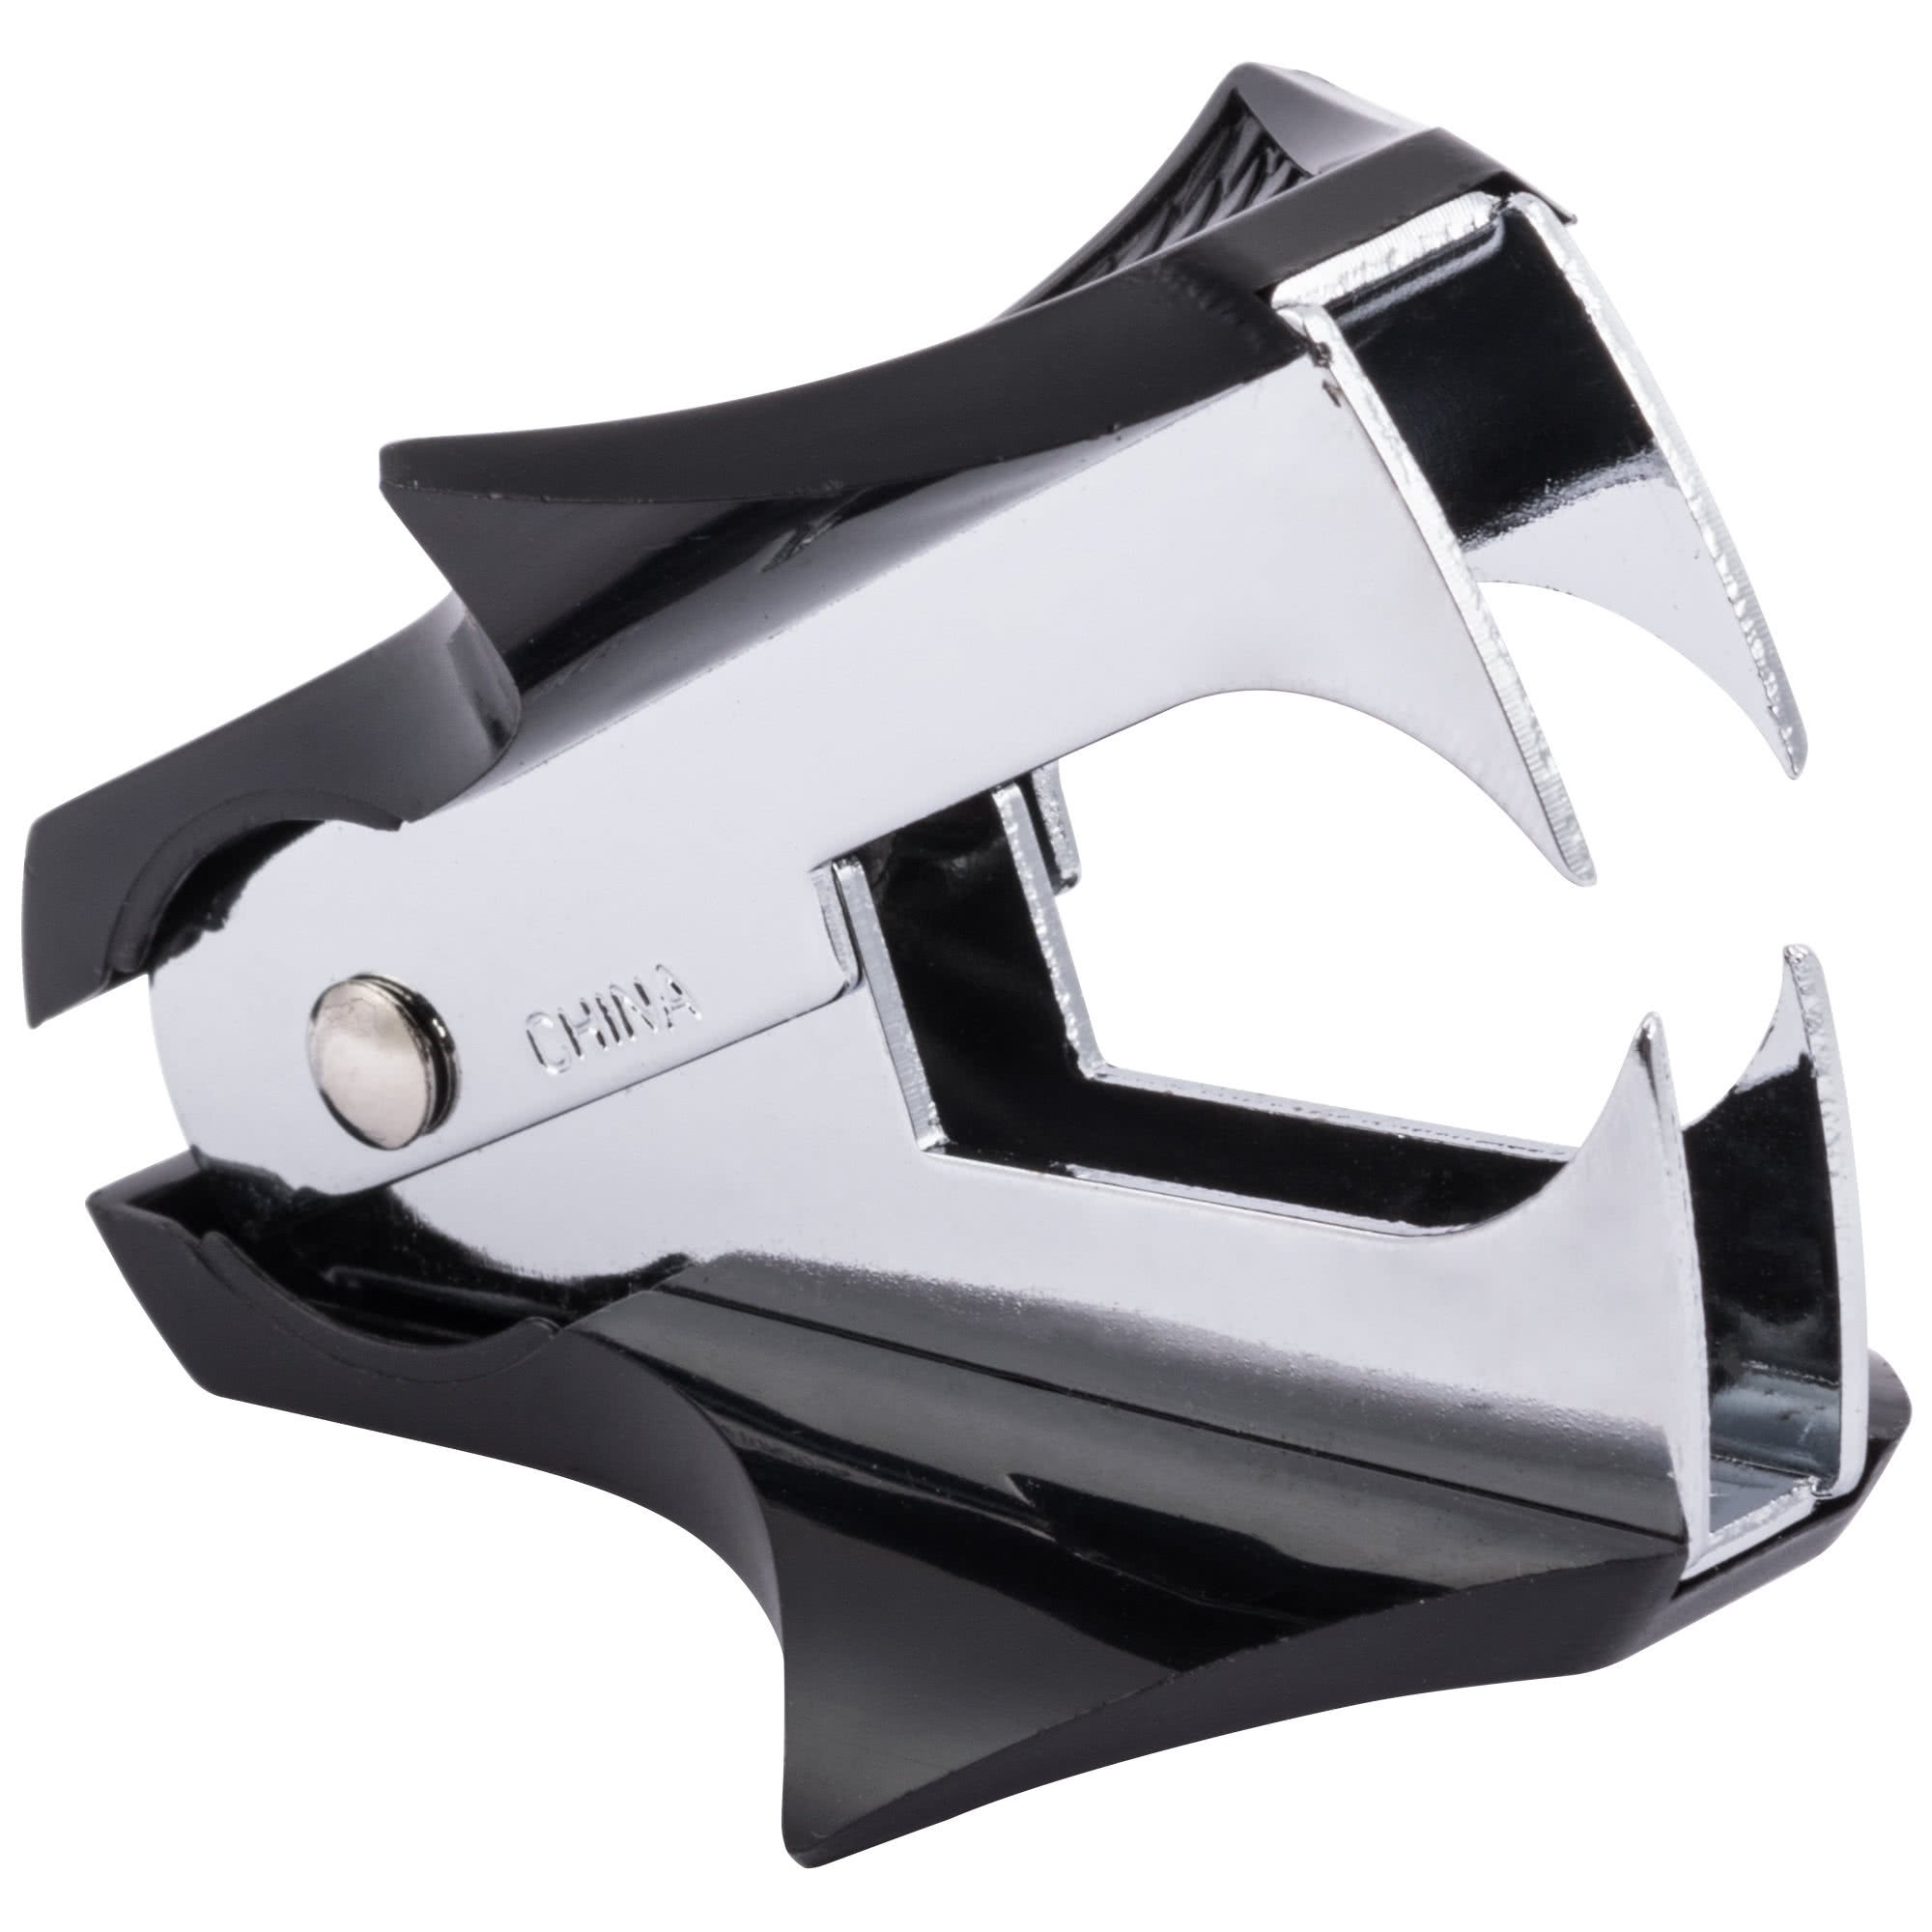 TableTop King 38101 Black Deluxe Jaw-Style Staple Remover